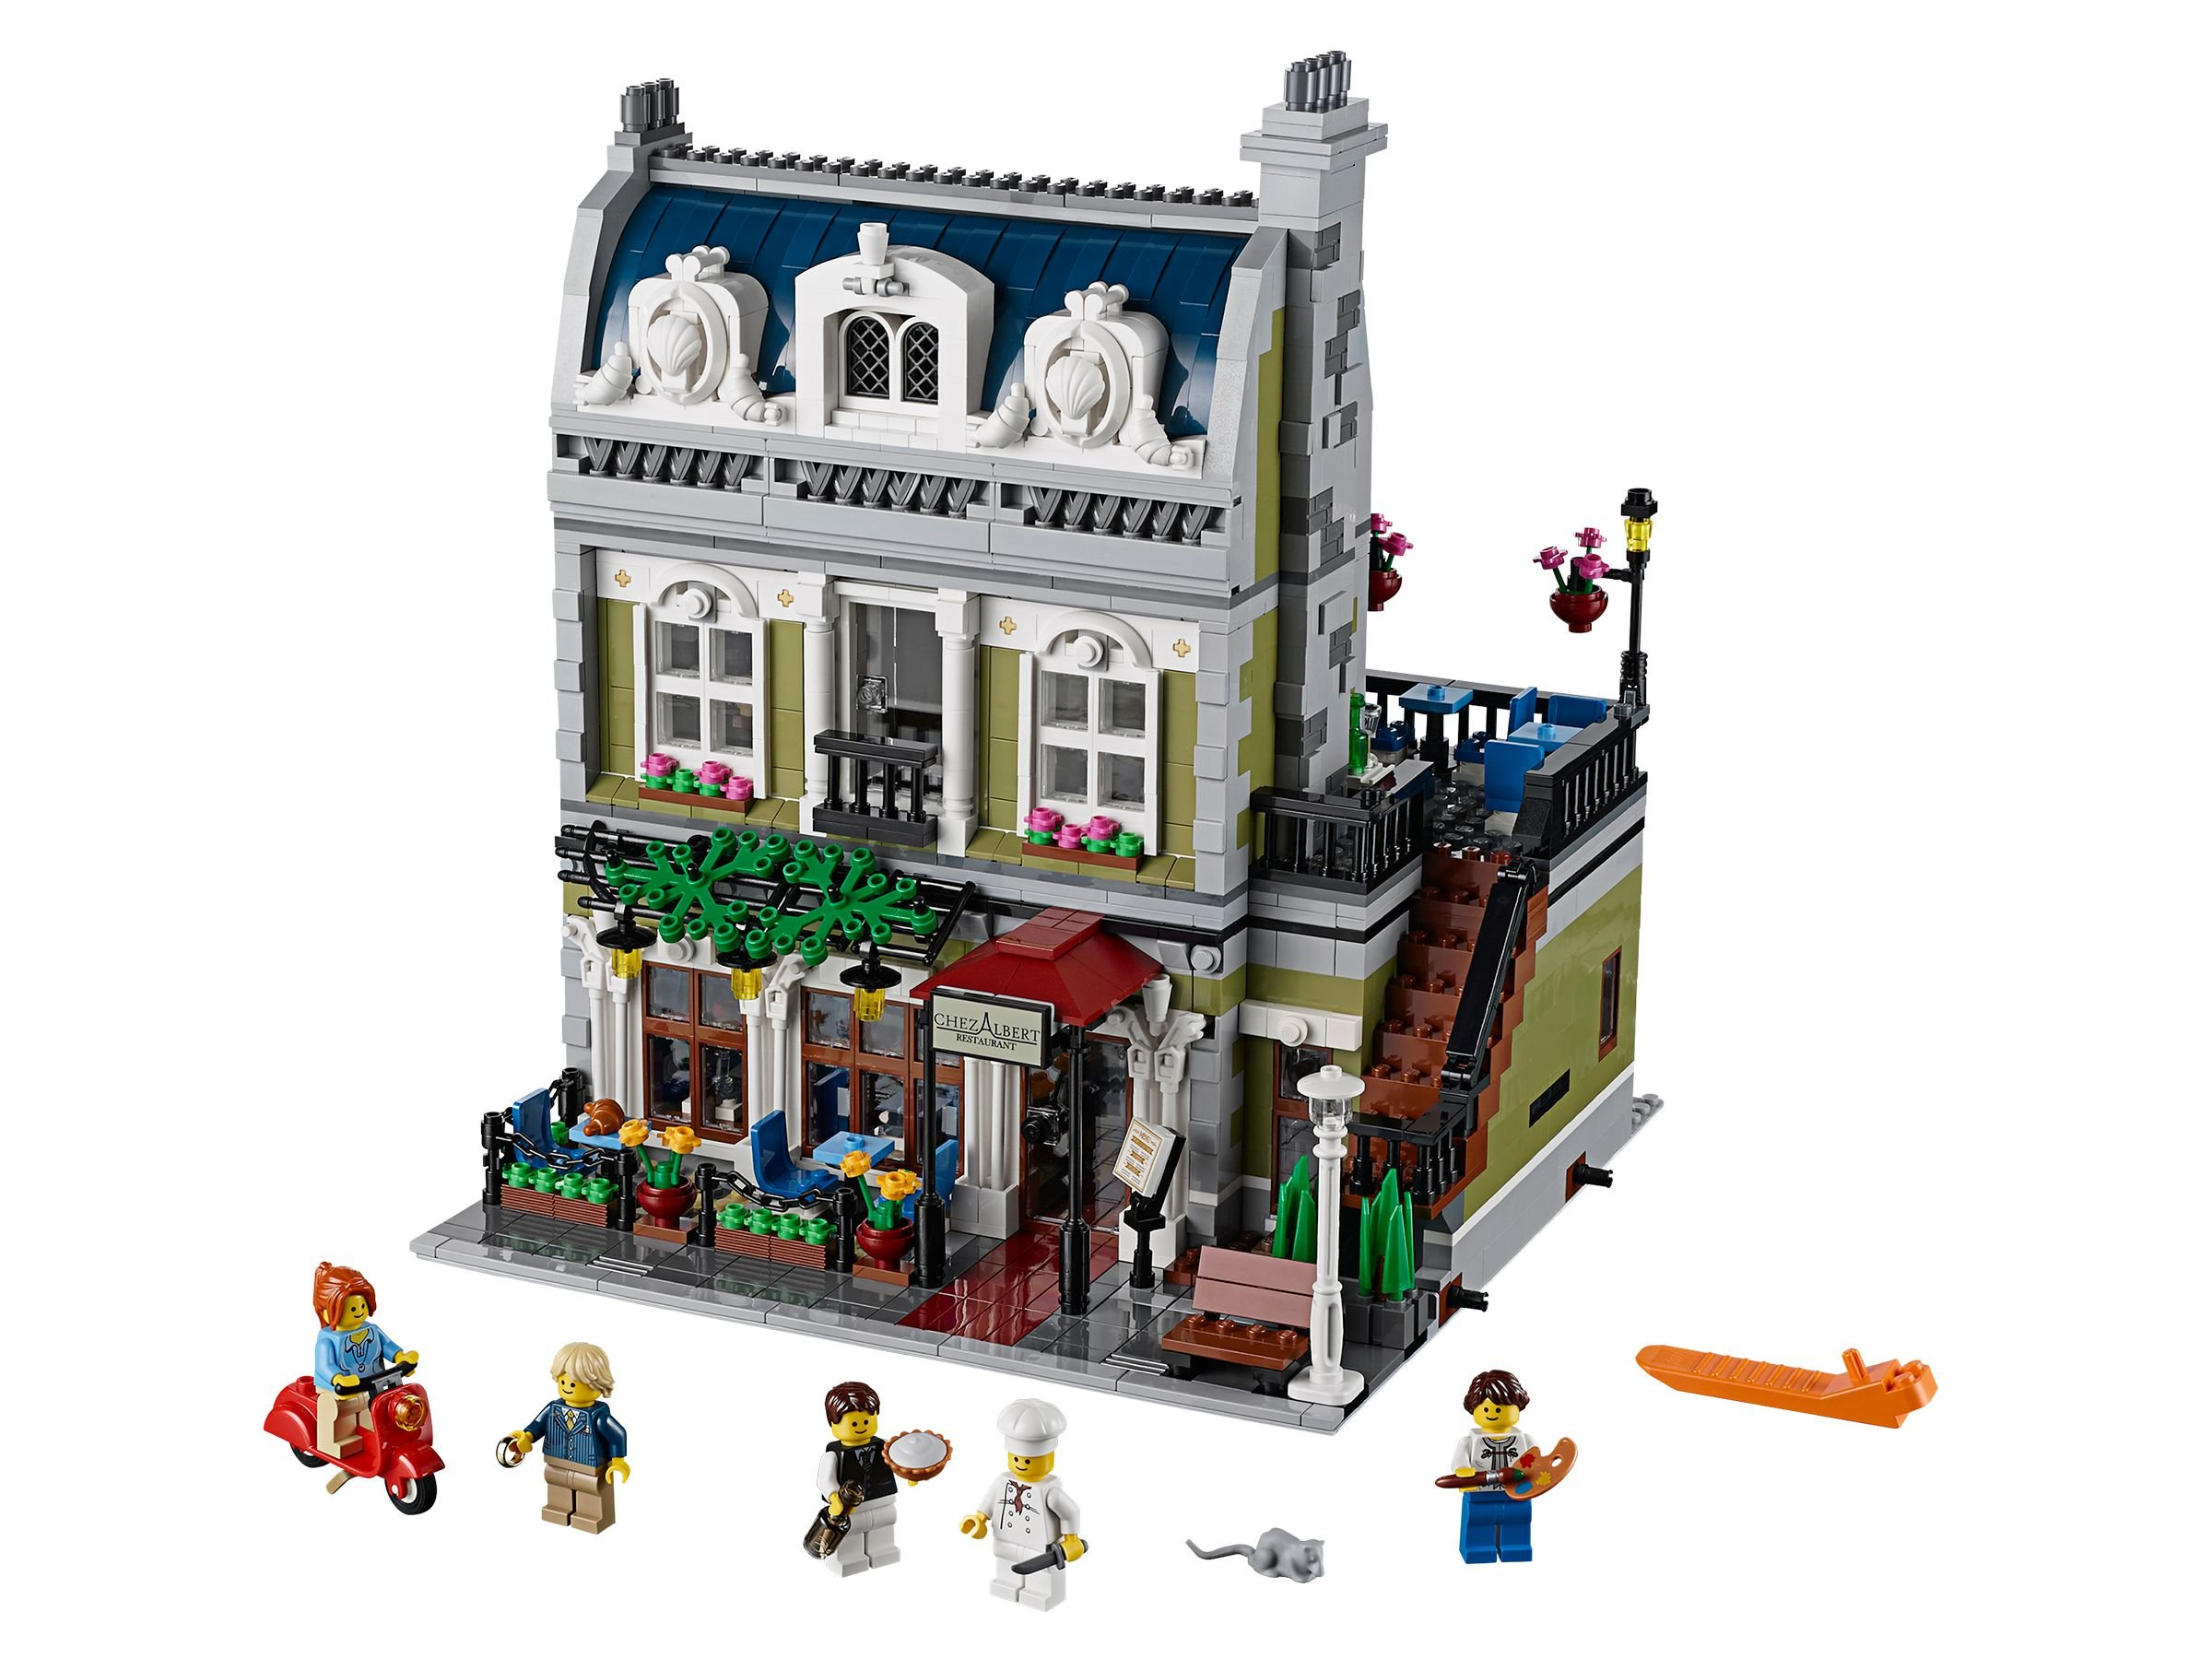 LEGO Advanced Models 10243 Pariser Restaurant LEGO_10243.jpg